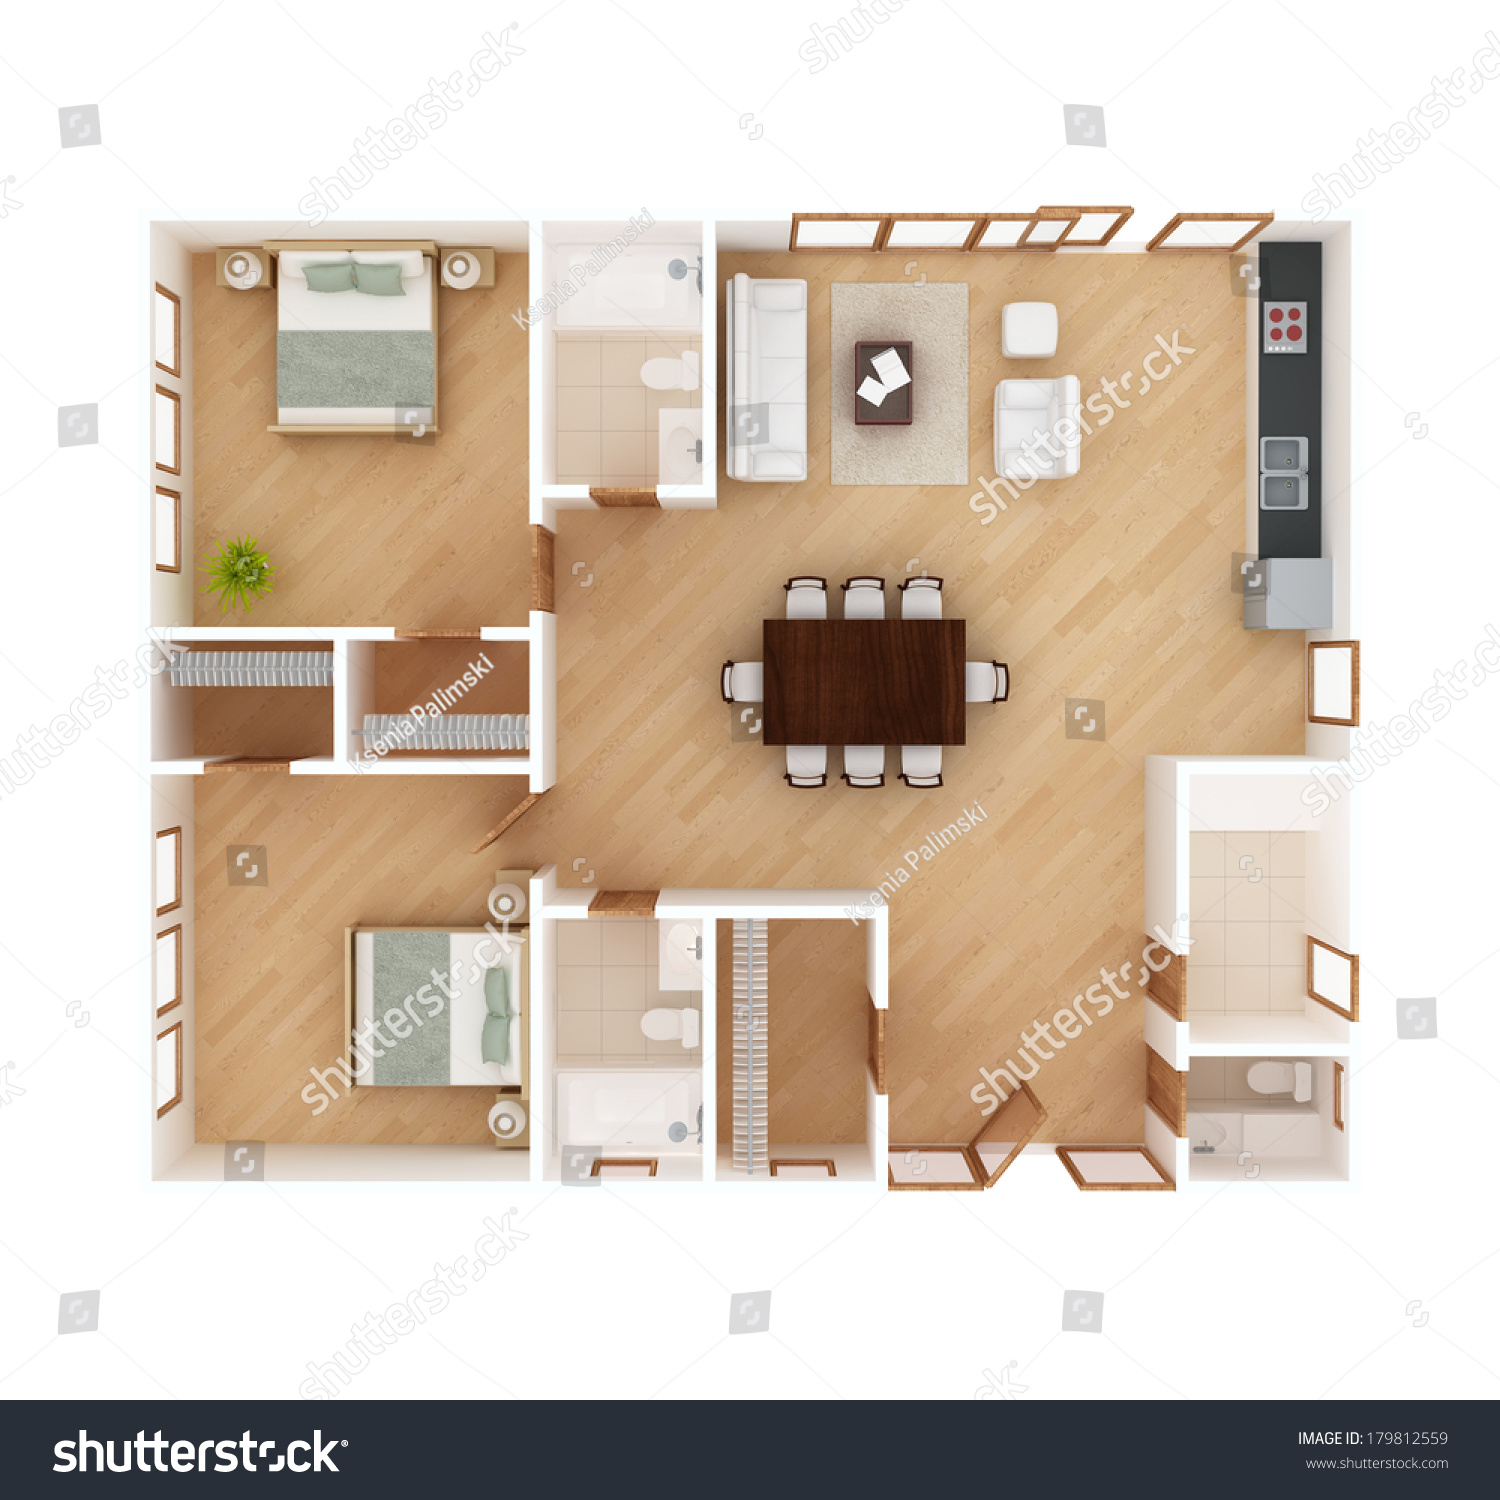 Image Result For White House Shutter Ideas